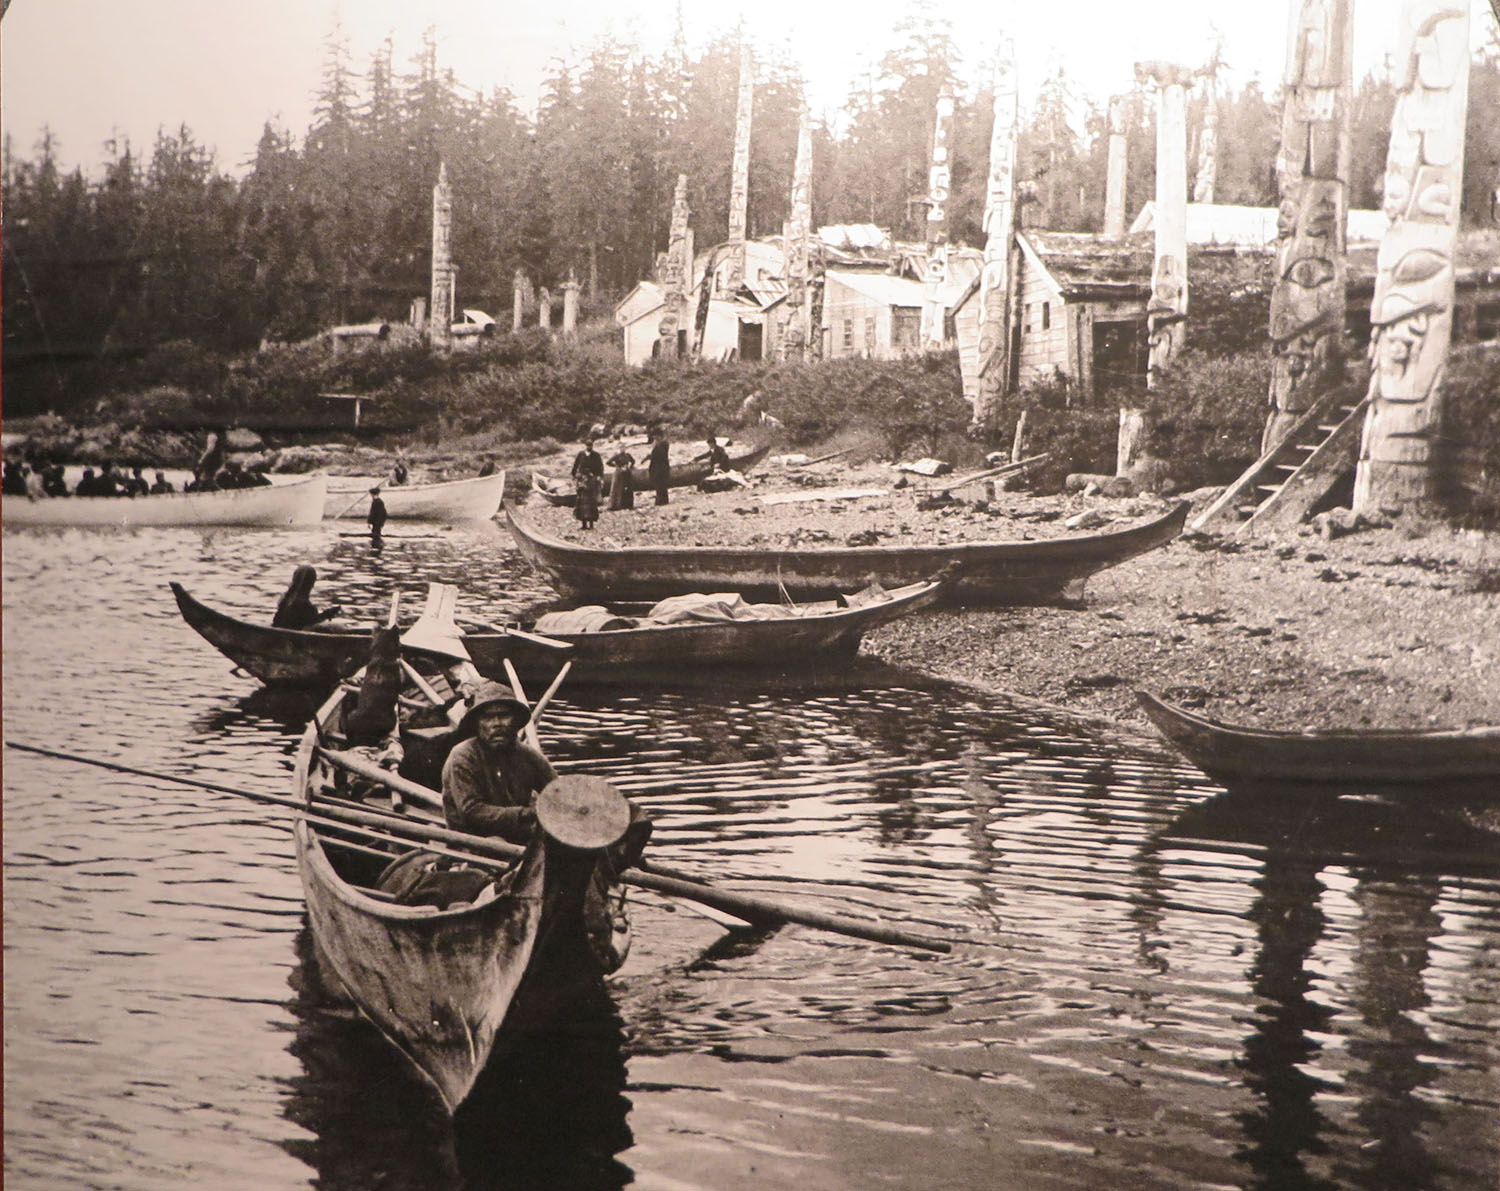 Alaska-Ketchikan-Old-Photo